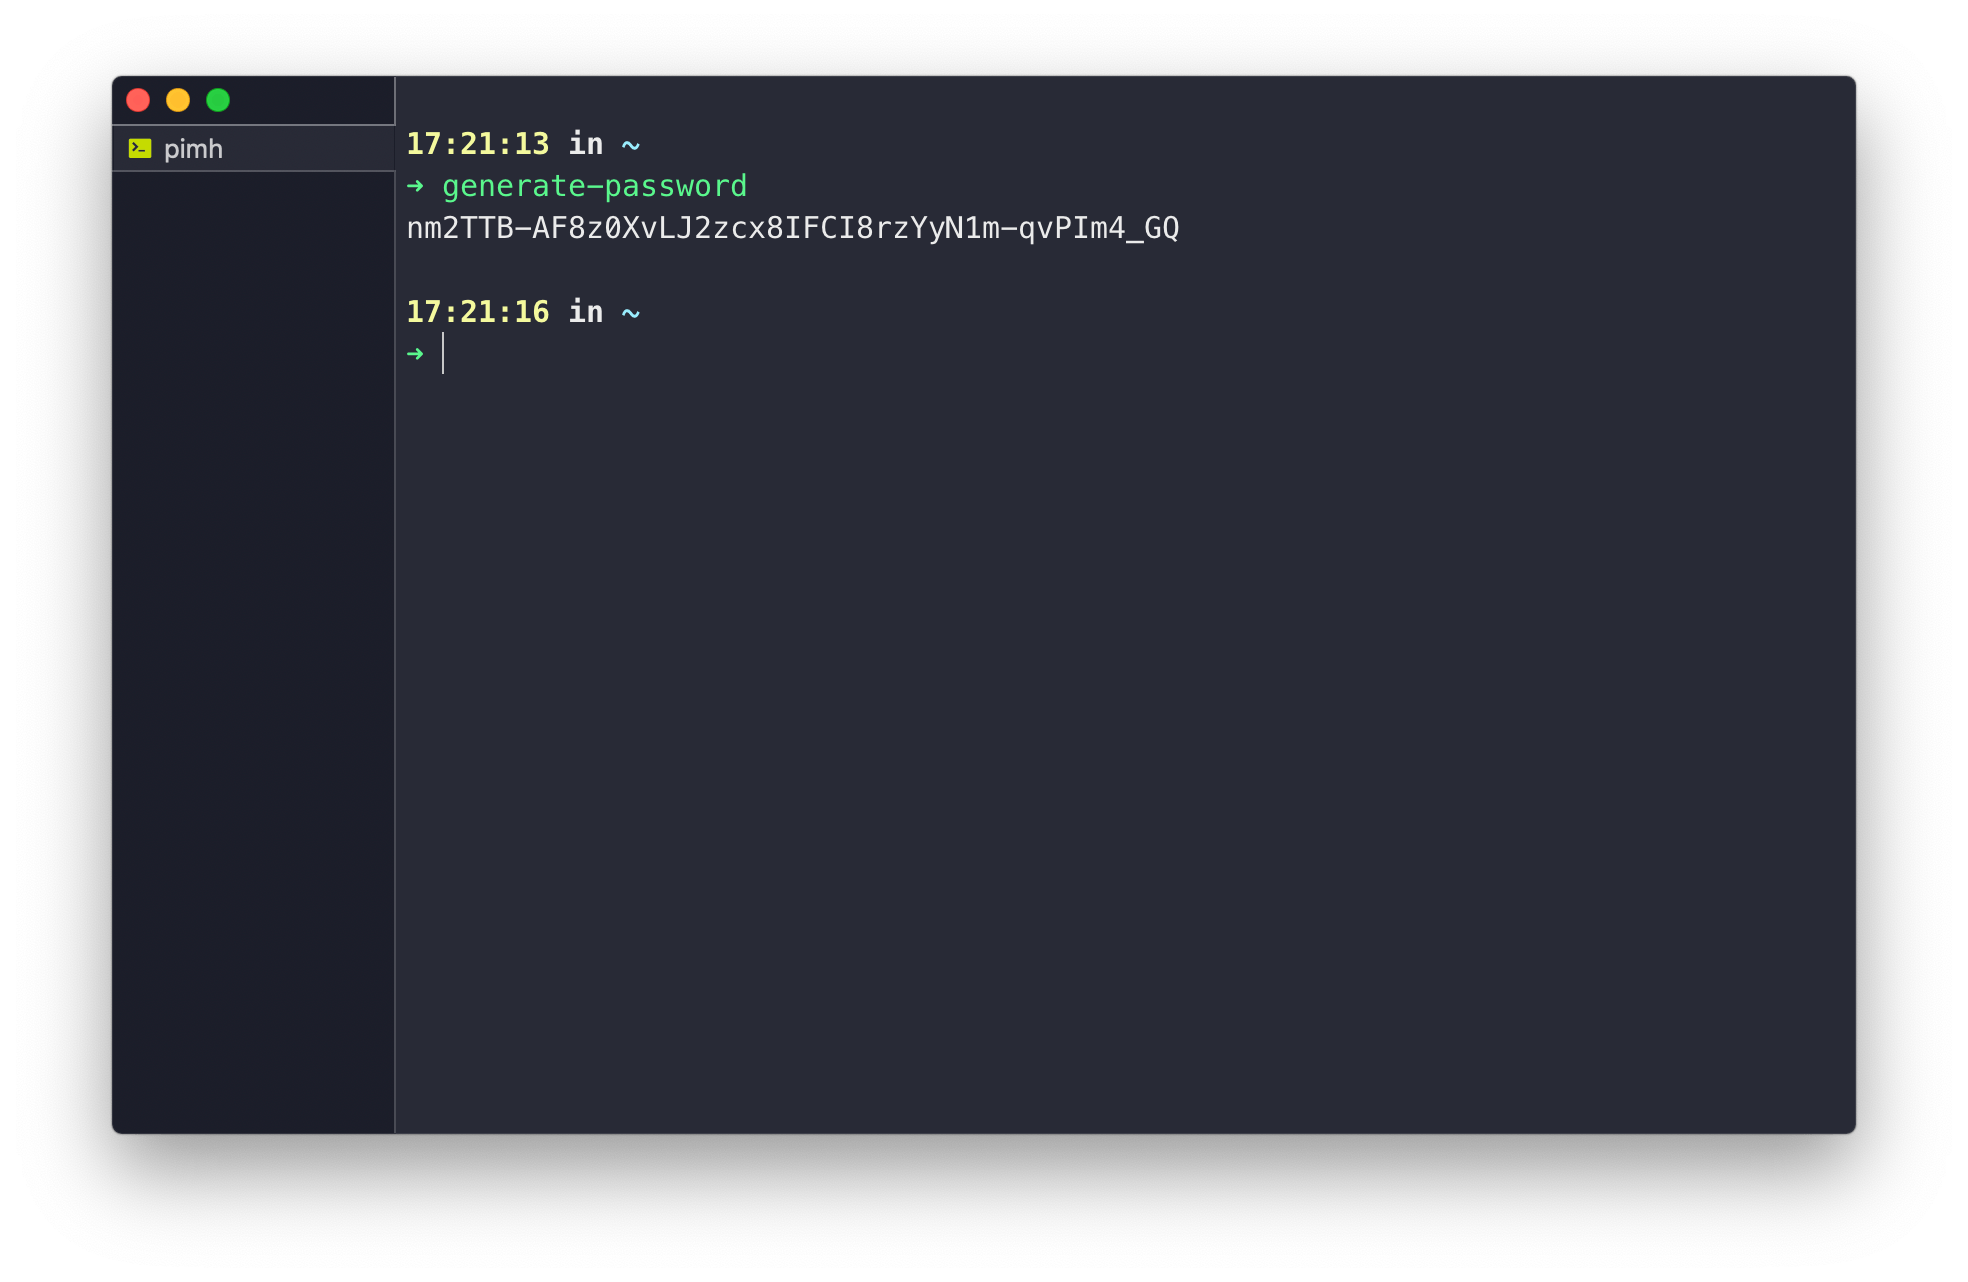 """A terminal window. A line of input reads """"generate-password"""", followed by a complex string output"""